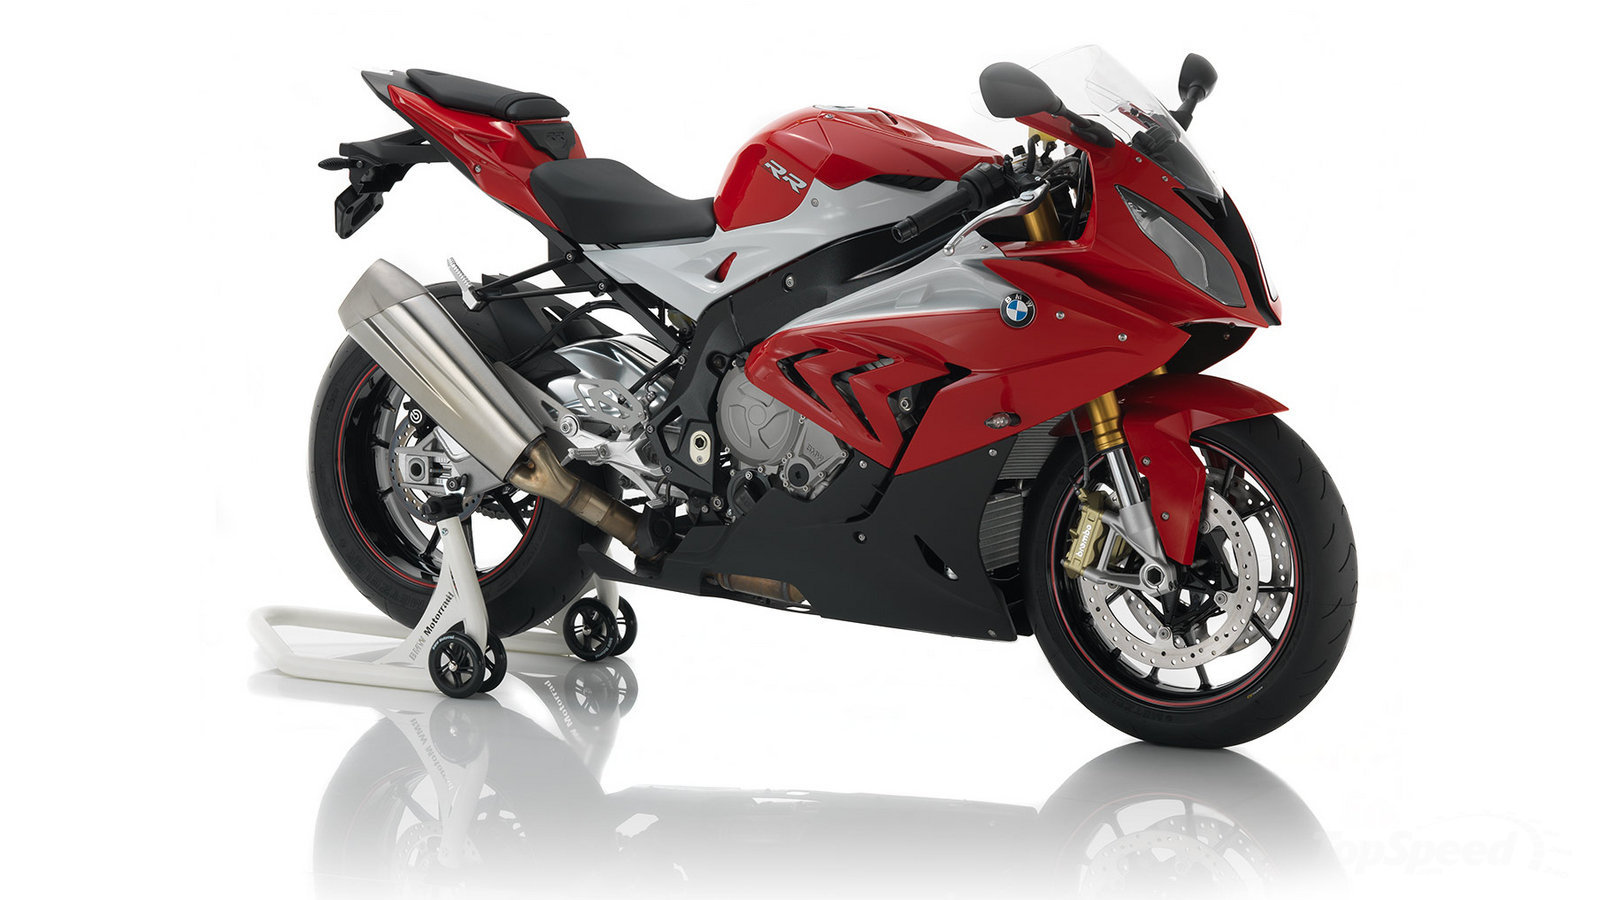 2015 2017 bmw s 1000 rr picture 678715 motorcycle review top speed. Black Bedroom Furniture Sets. Home Design Ideas